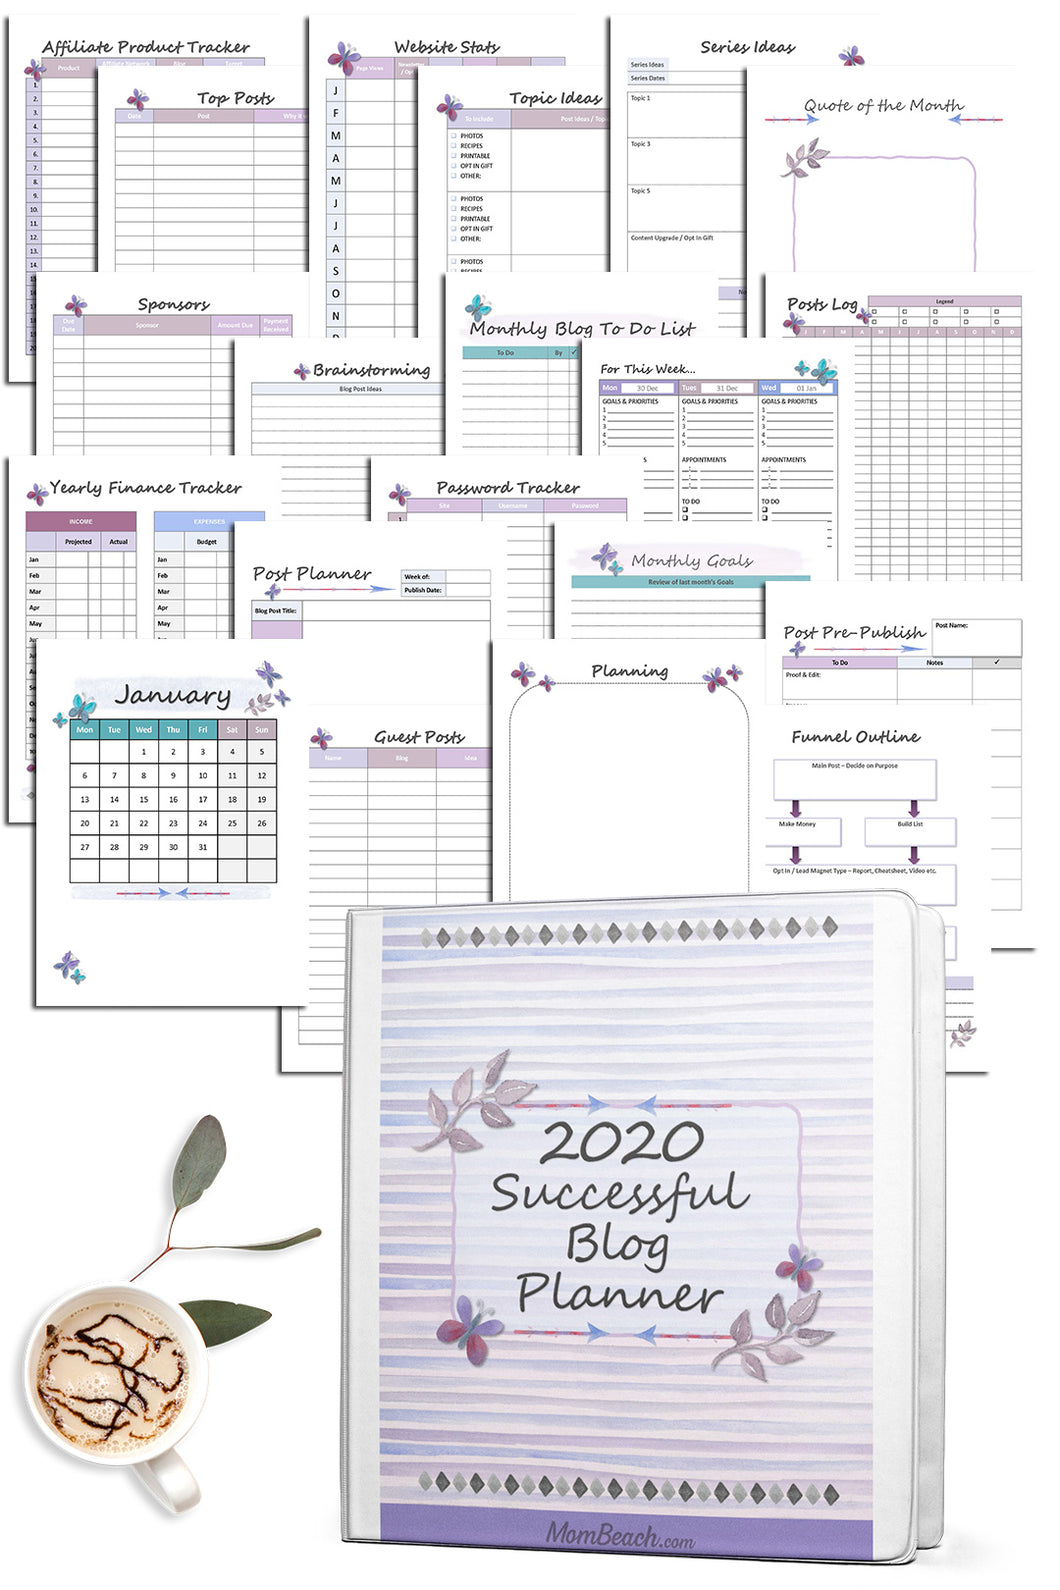 2020 Successful Blog Planner - Color & BW (278 Pages)